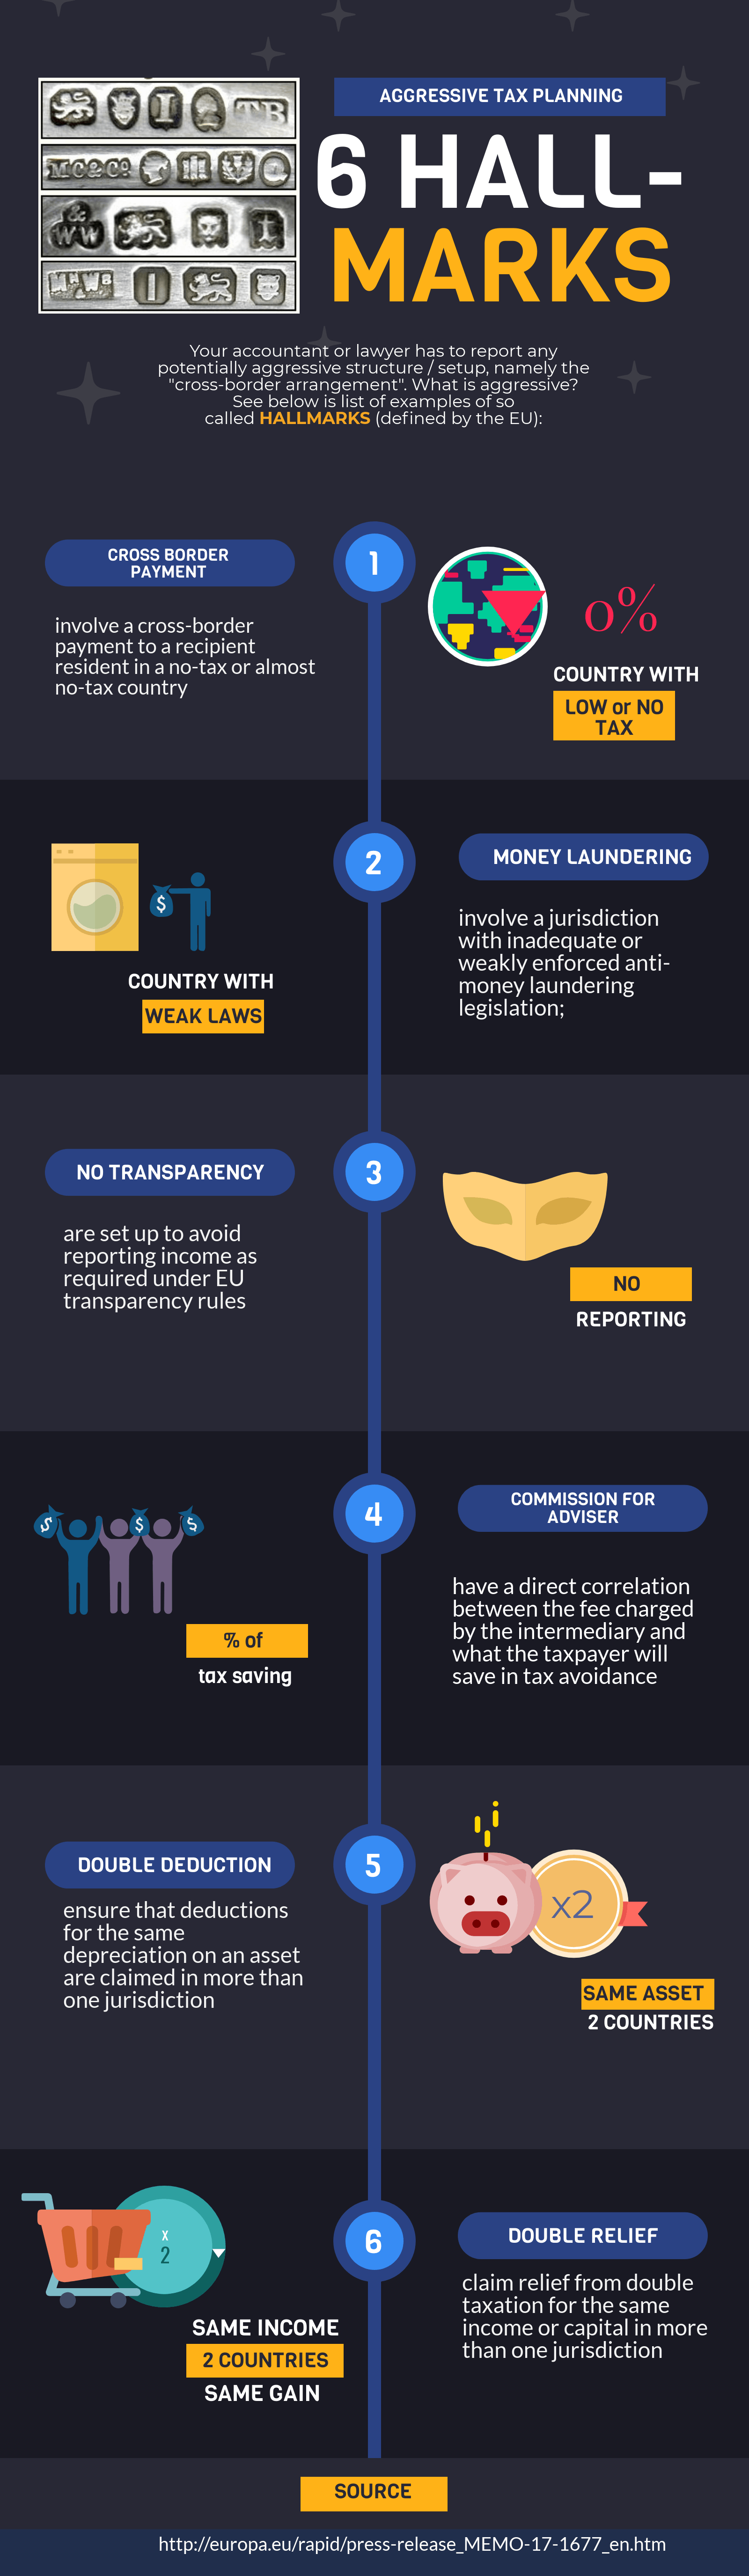 Infographic about aggressive Tax Planning in Malta 2019